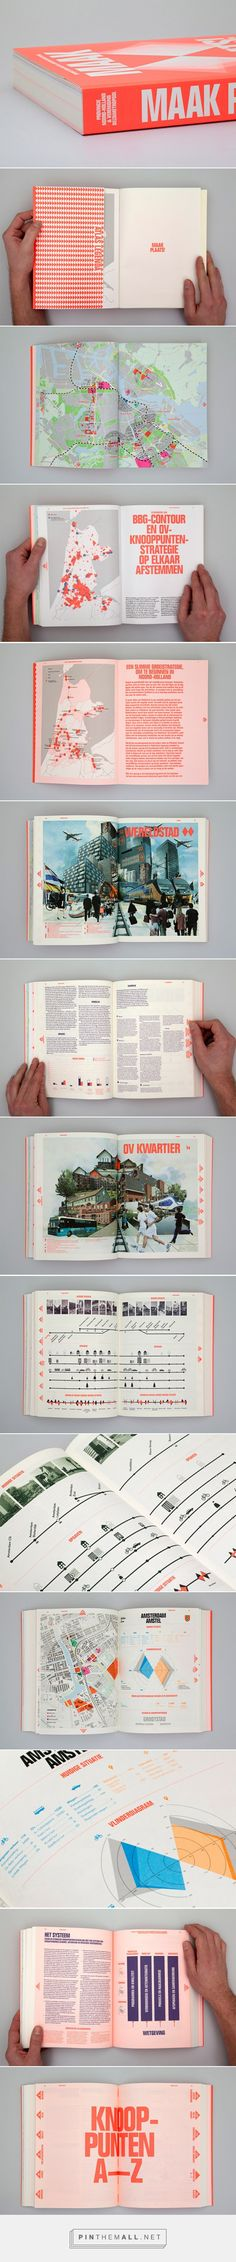 Maak Plaats: Editorial Design by Florian Mewes & Alfons Hooikaas | Inspiration Grid | Design Inspiration... - a grouped images picture - Pin Them All